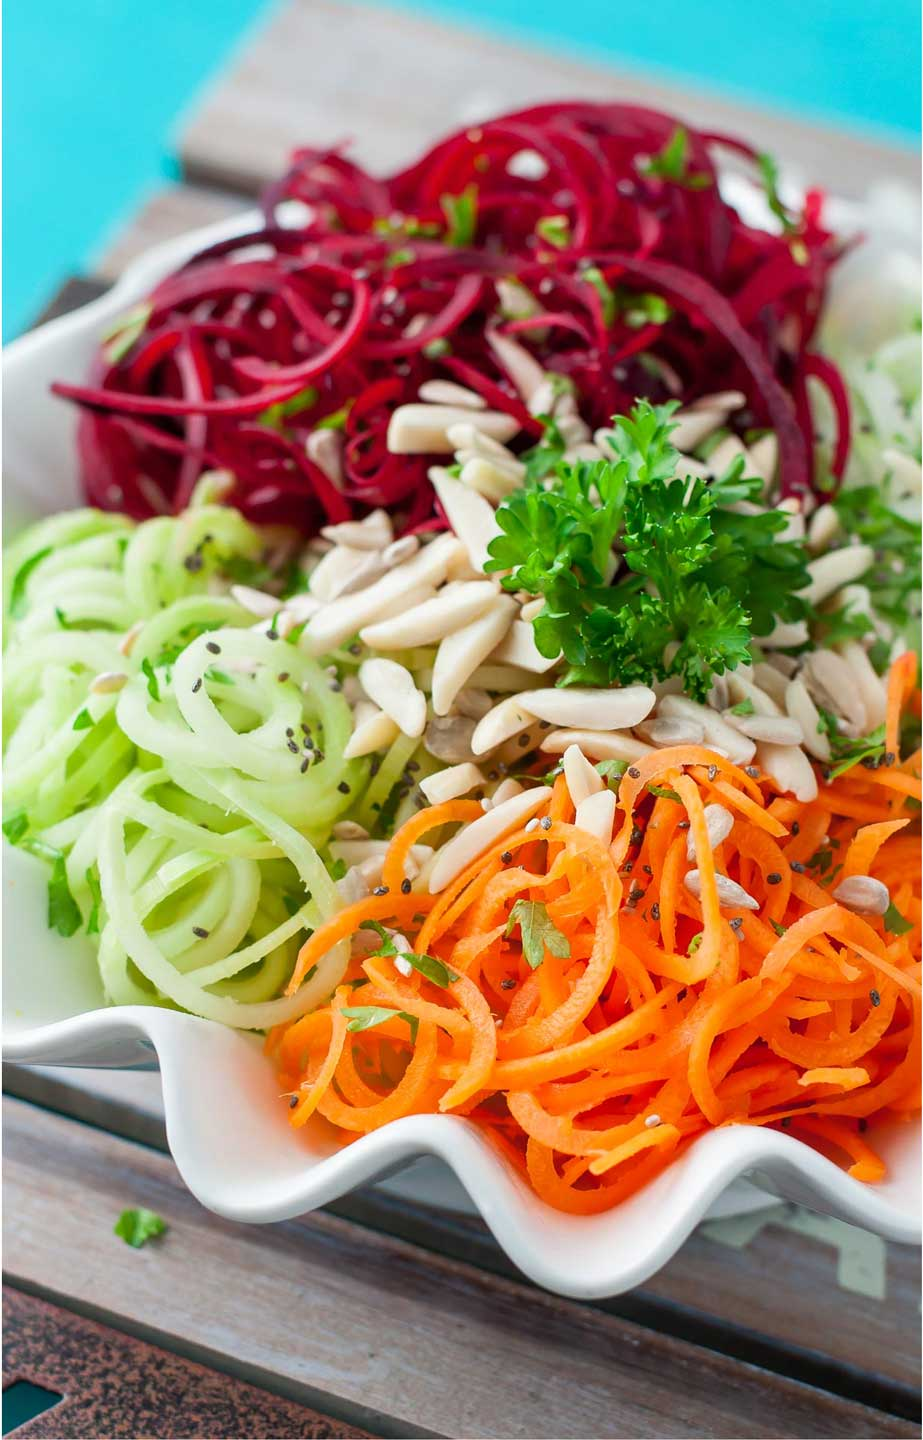 This Spiralized Veggie Salad uses spiralized broccoli stalks, along with other spiralized veggies, to create a healthy, visually stunning salad recipe that brilliantly repurposes those stalks!